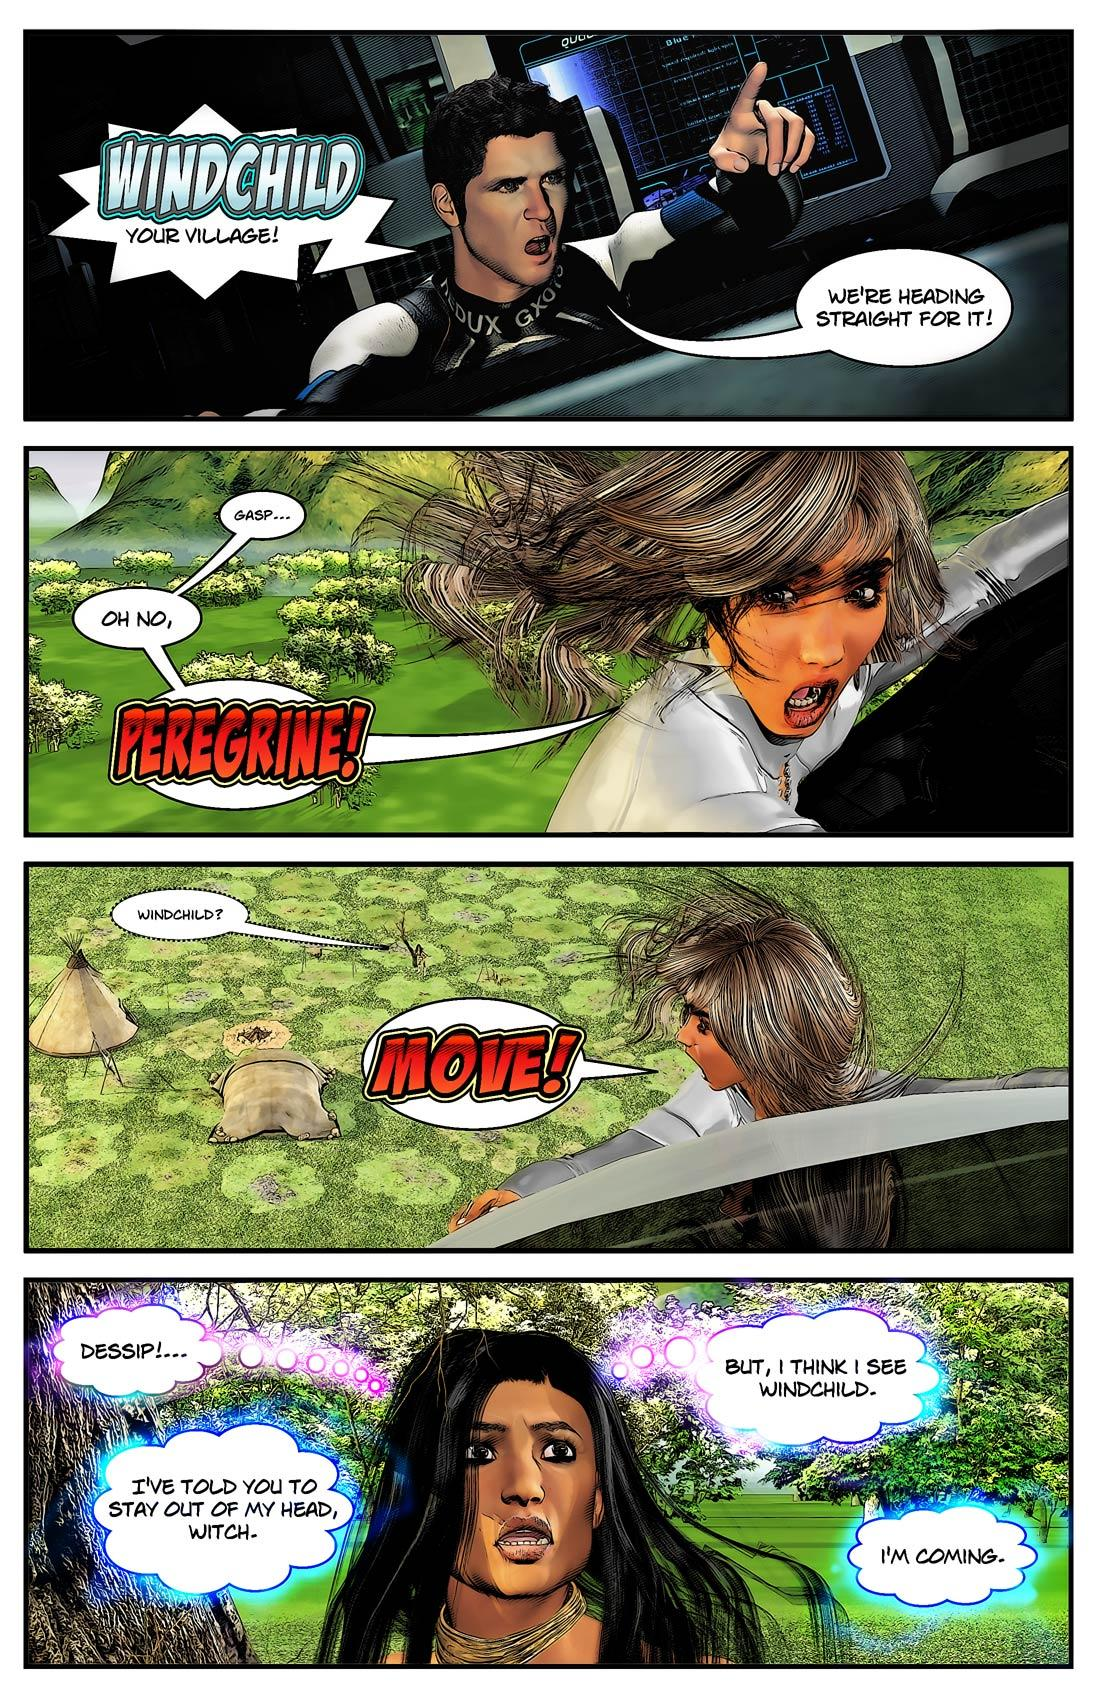 book2 page 8 by Miles Obrien